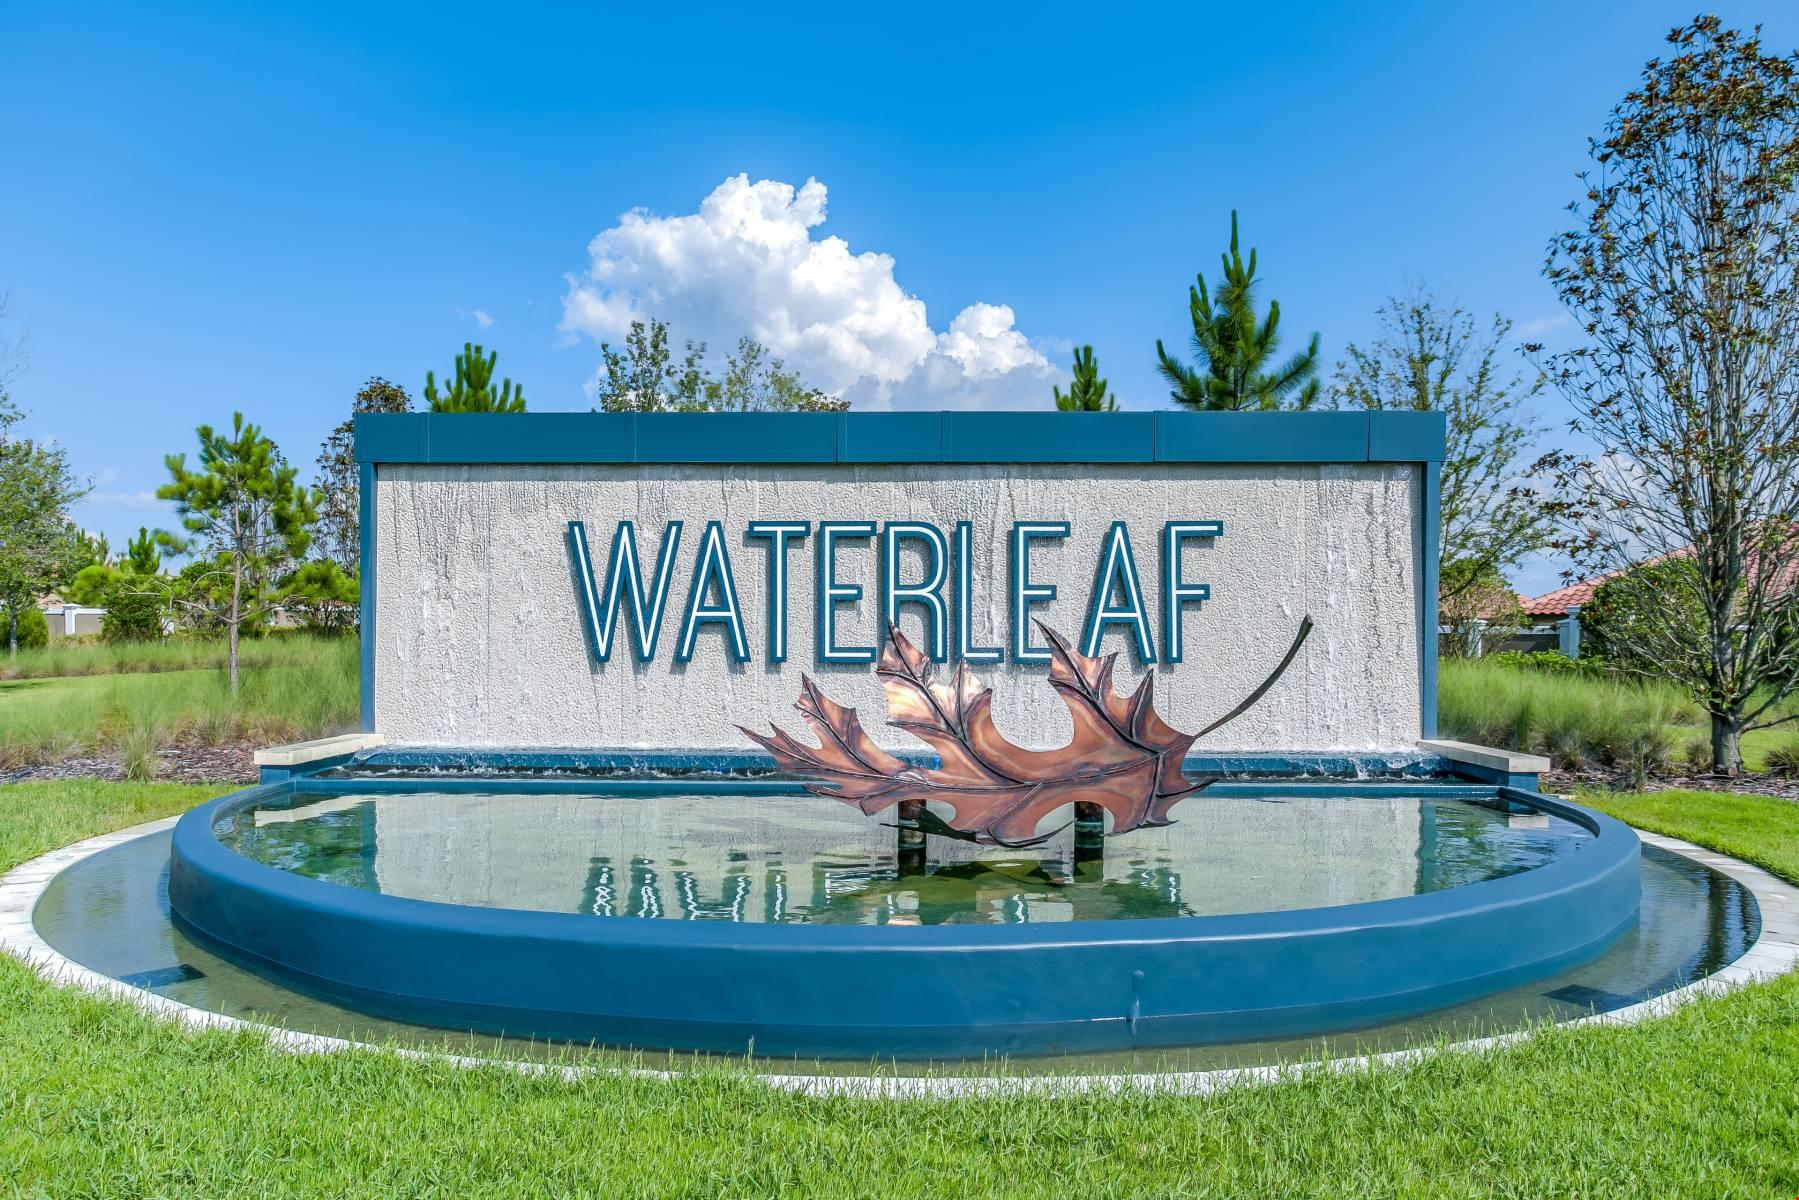 Waterleaf Riverview Florida Real Estate | Riverview Realtor | New Homes for Sale